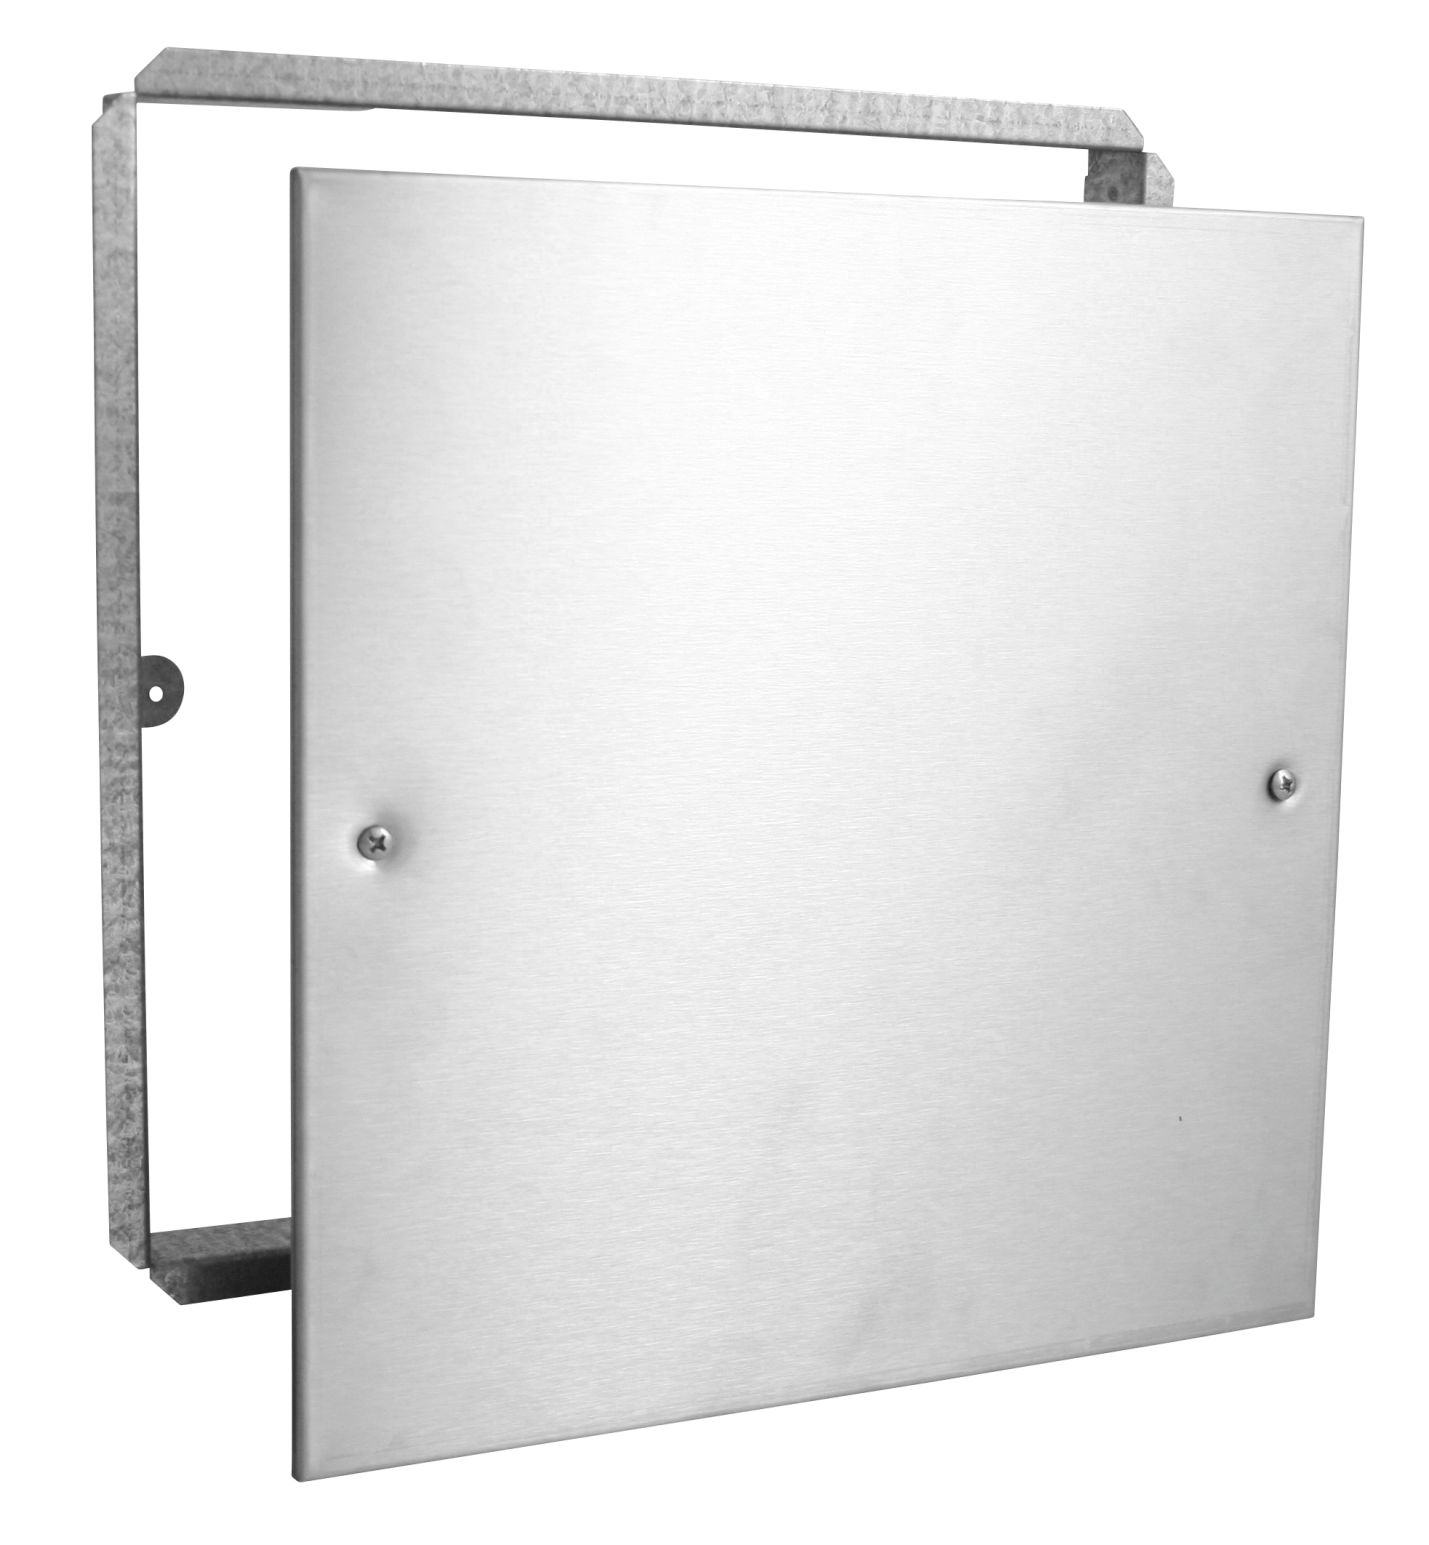 Stainless Access Doors : Stainless steel access panels with frame and screws